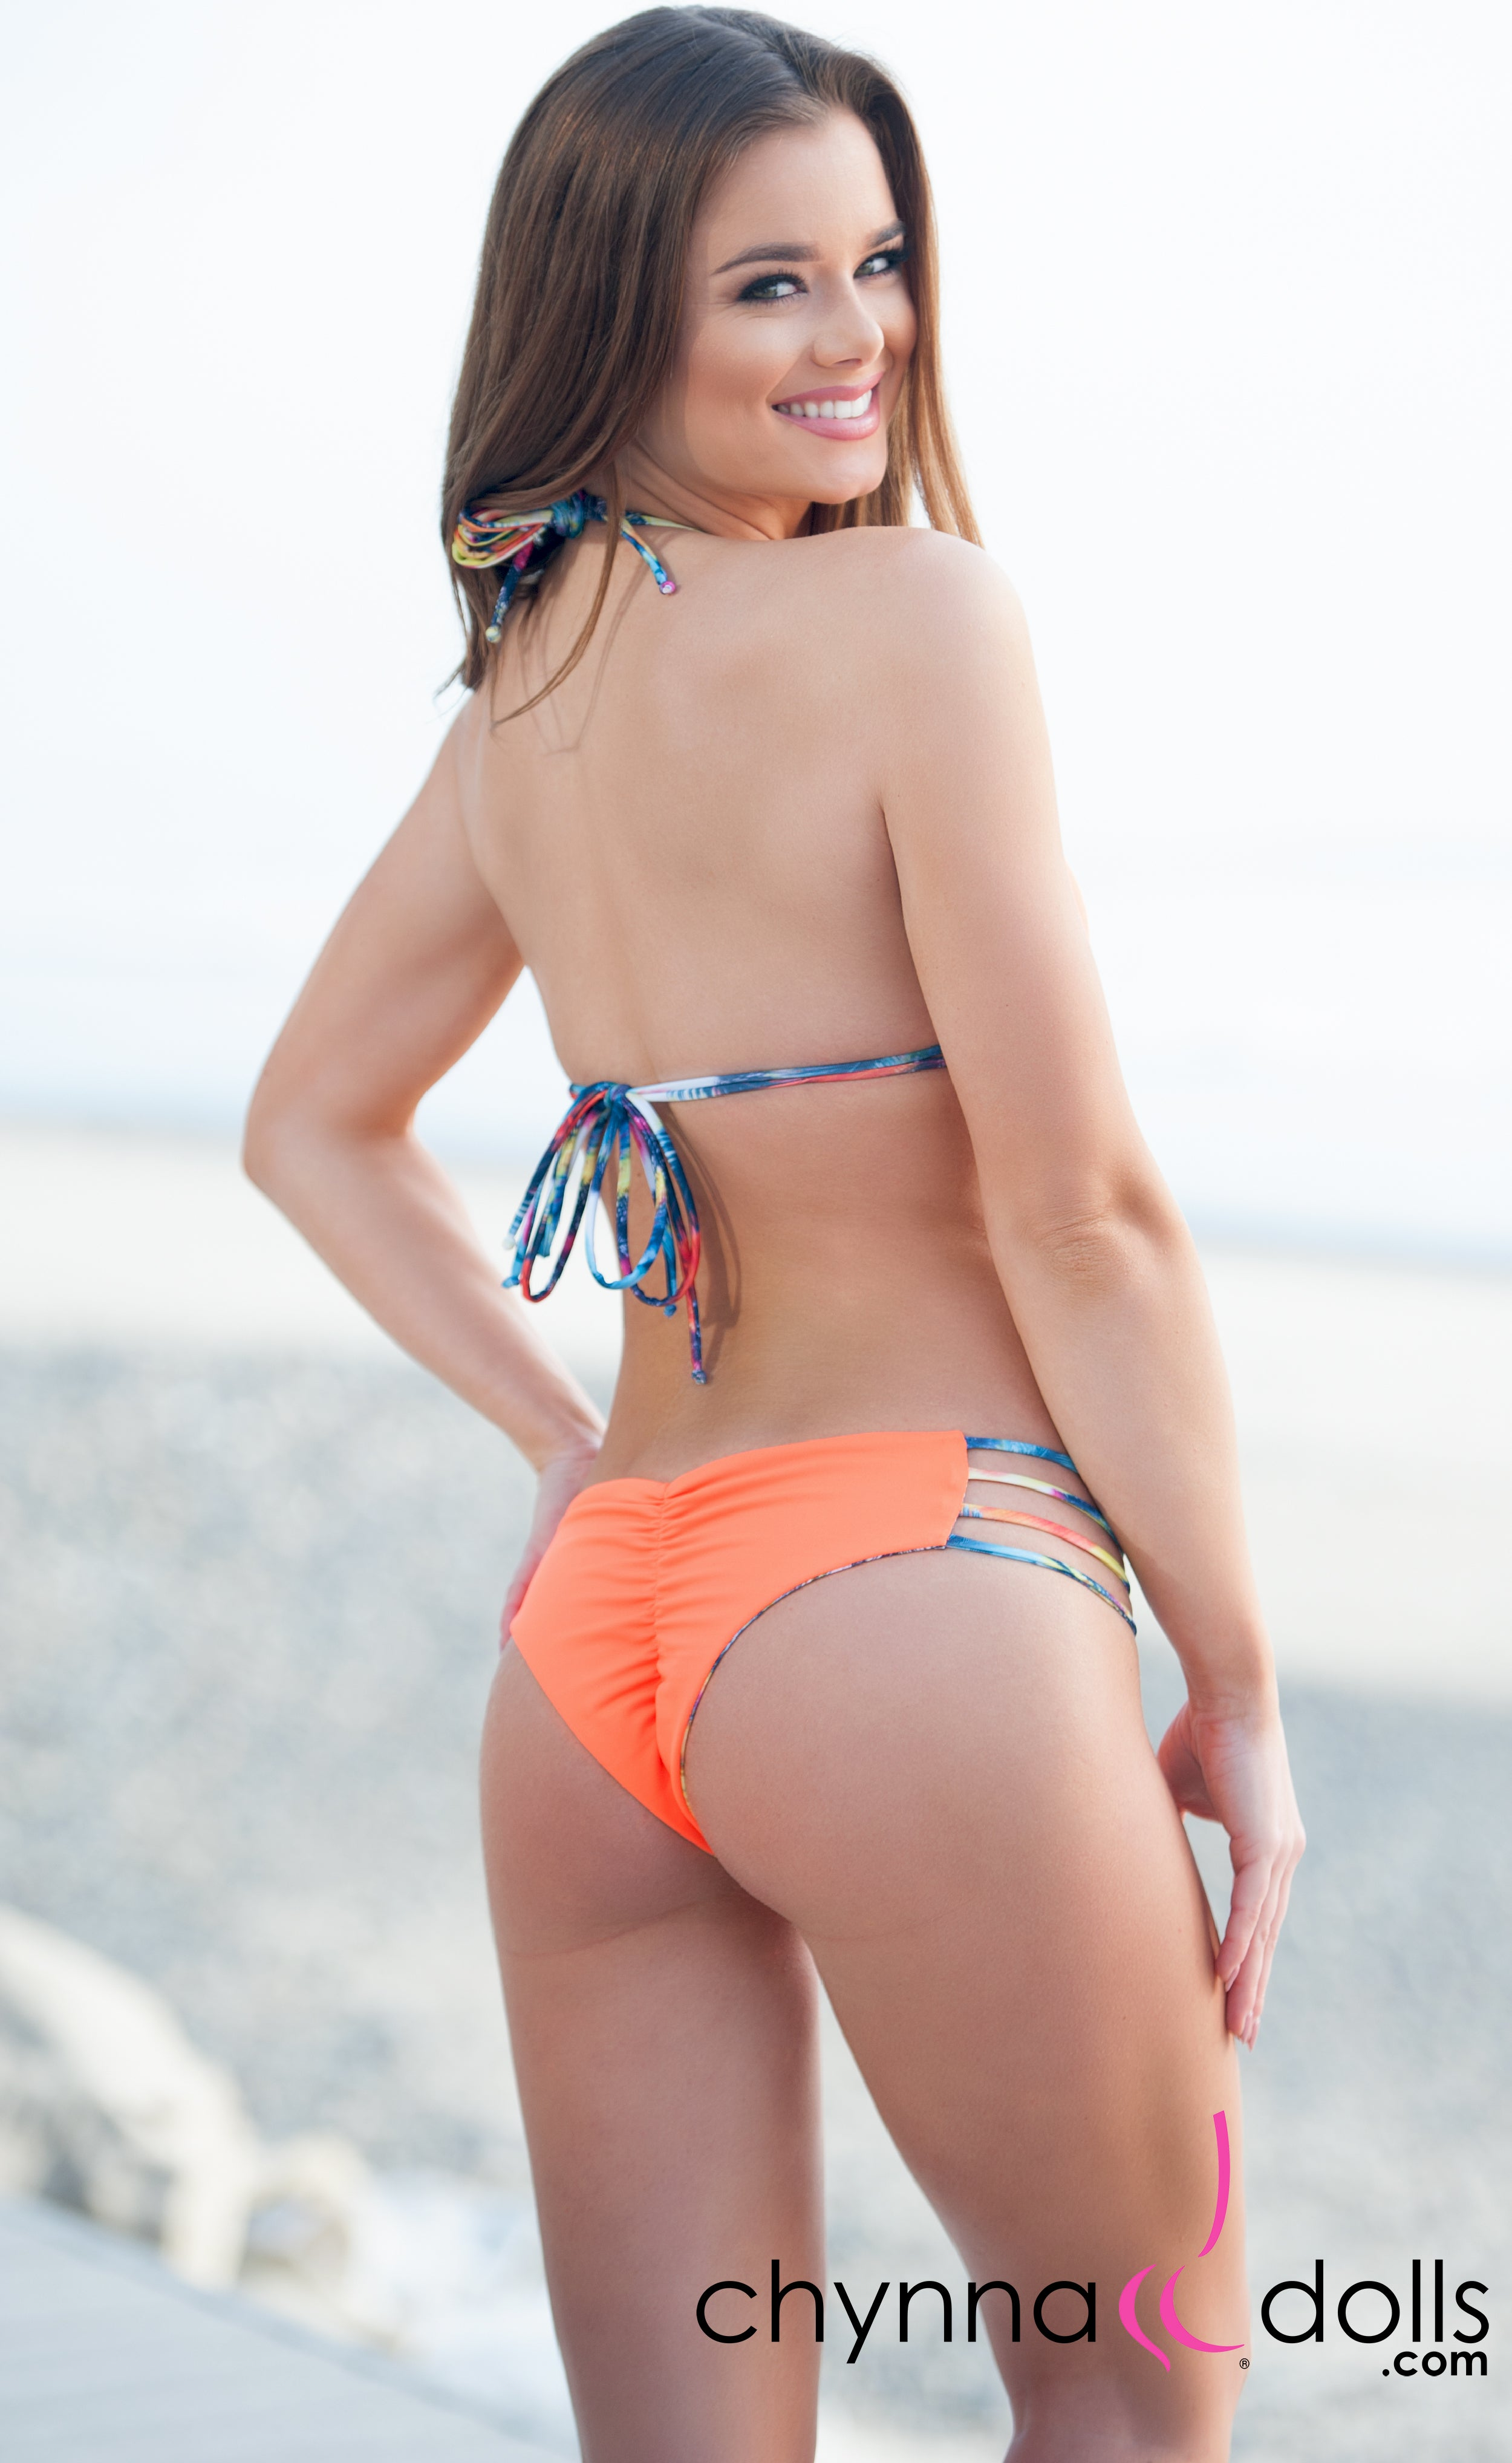 Ibiza: Reversible 4 Strap Diamond Bitty Bikini in Orange/Palm Tree - Chynna Dolls Swimwear